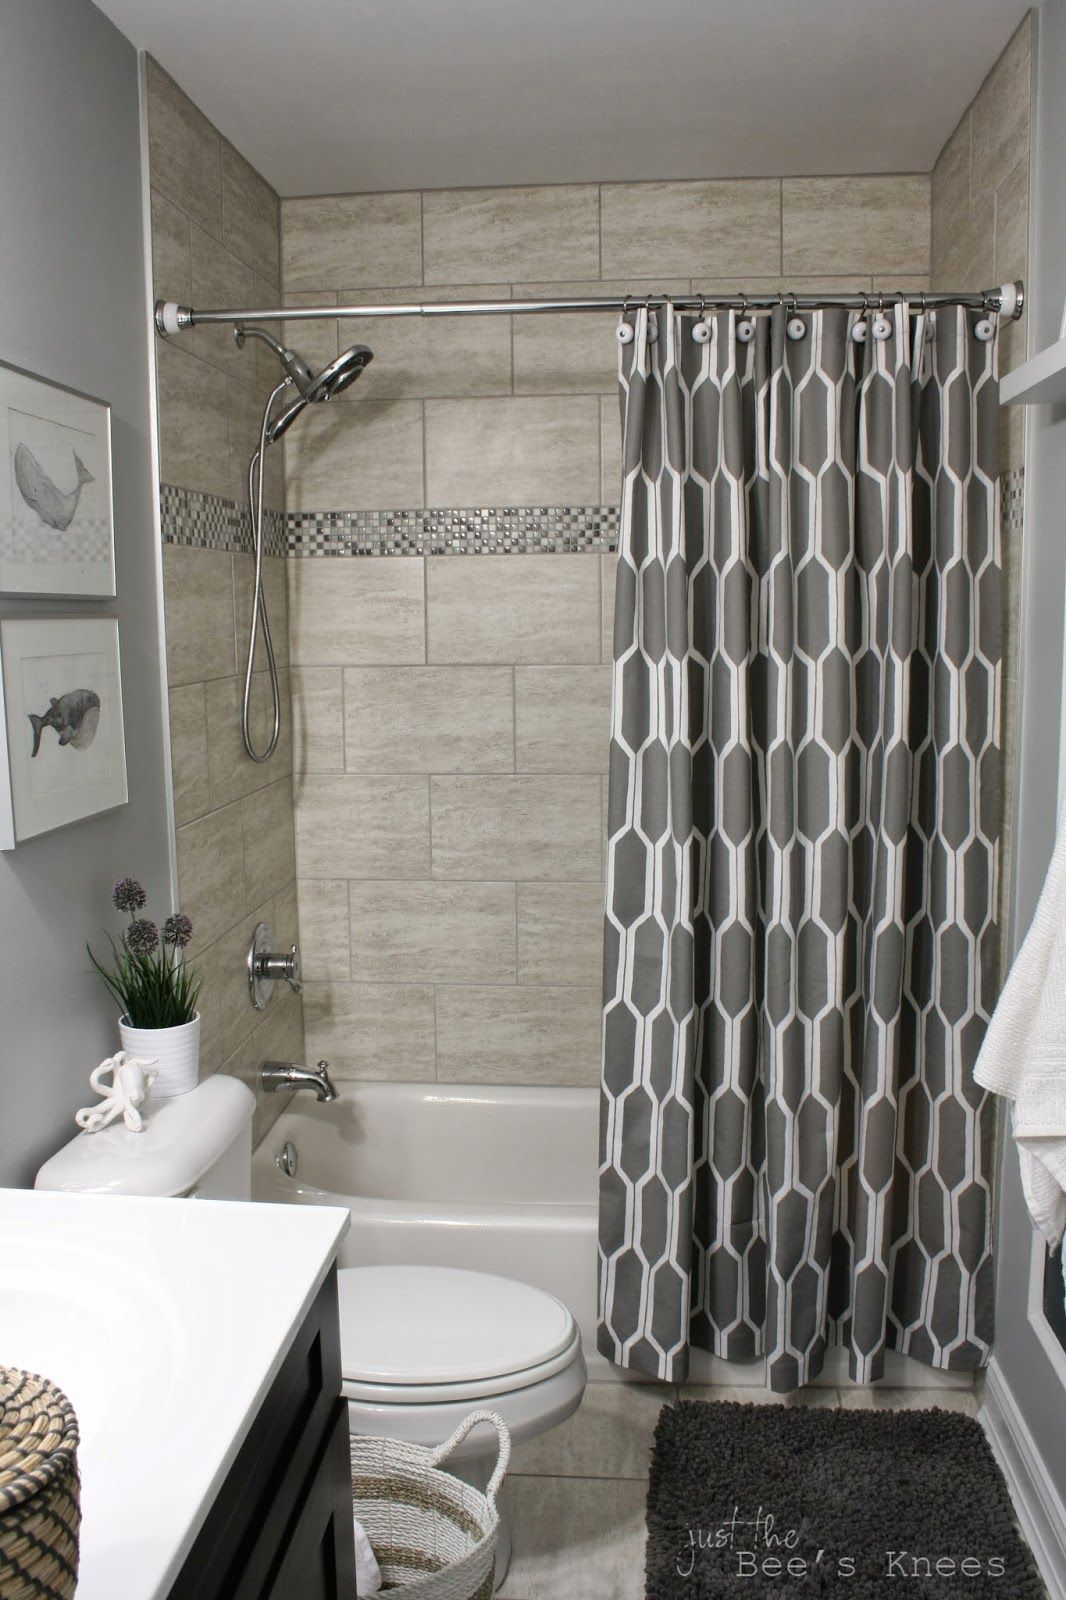 Tile Idea/Kids Bathroom   Honeycomb Shower Curtain From West Elm